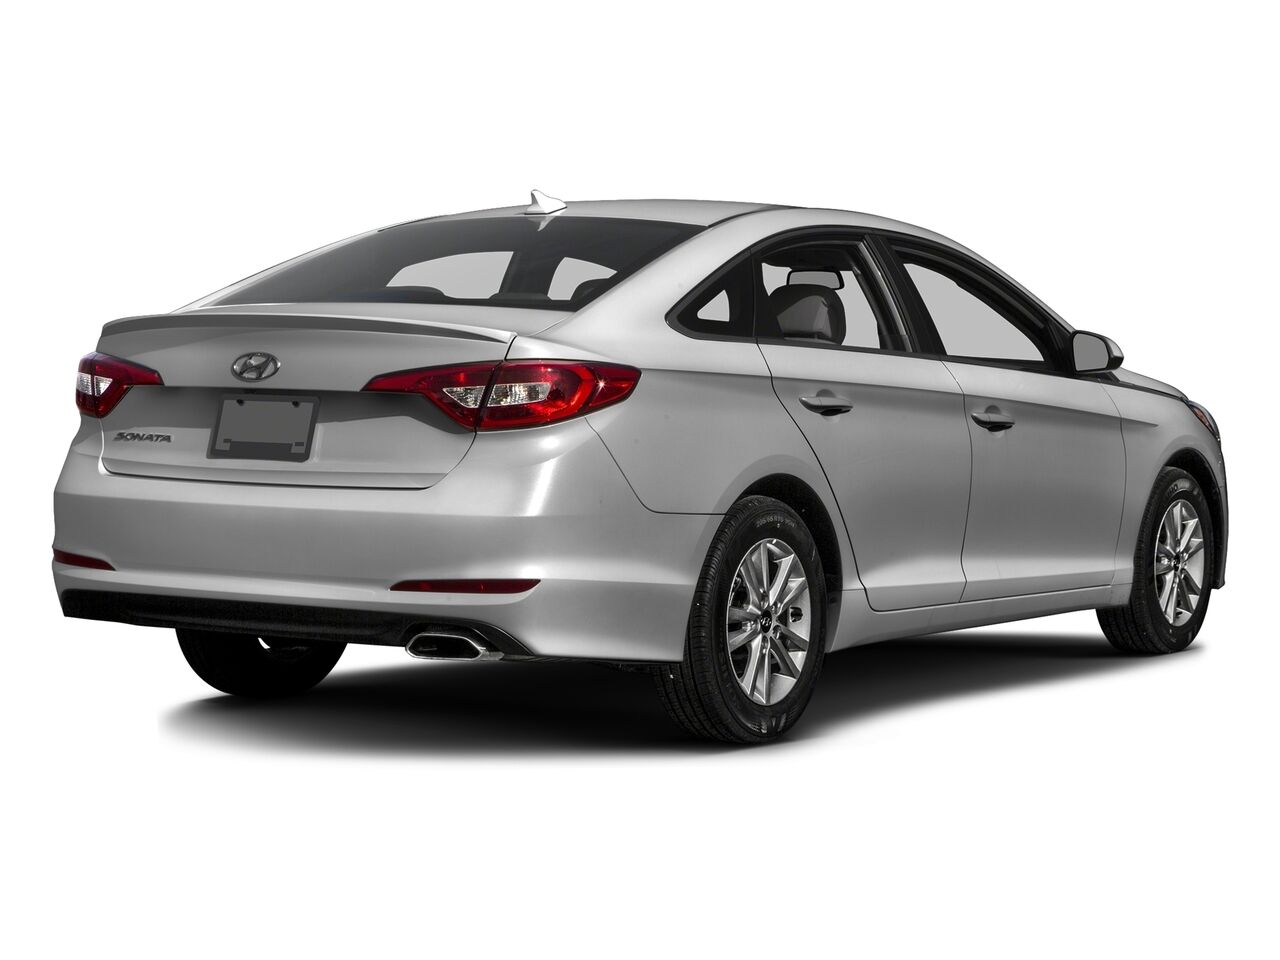 2016 Hyundai Sonata 4d Sedan Limited Surprise AZ